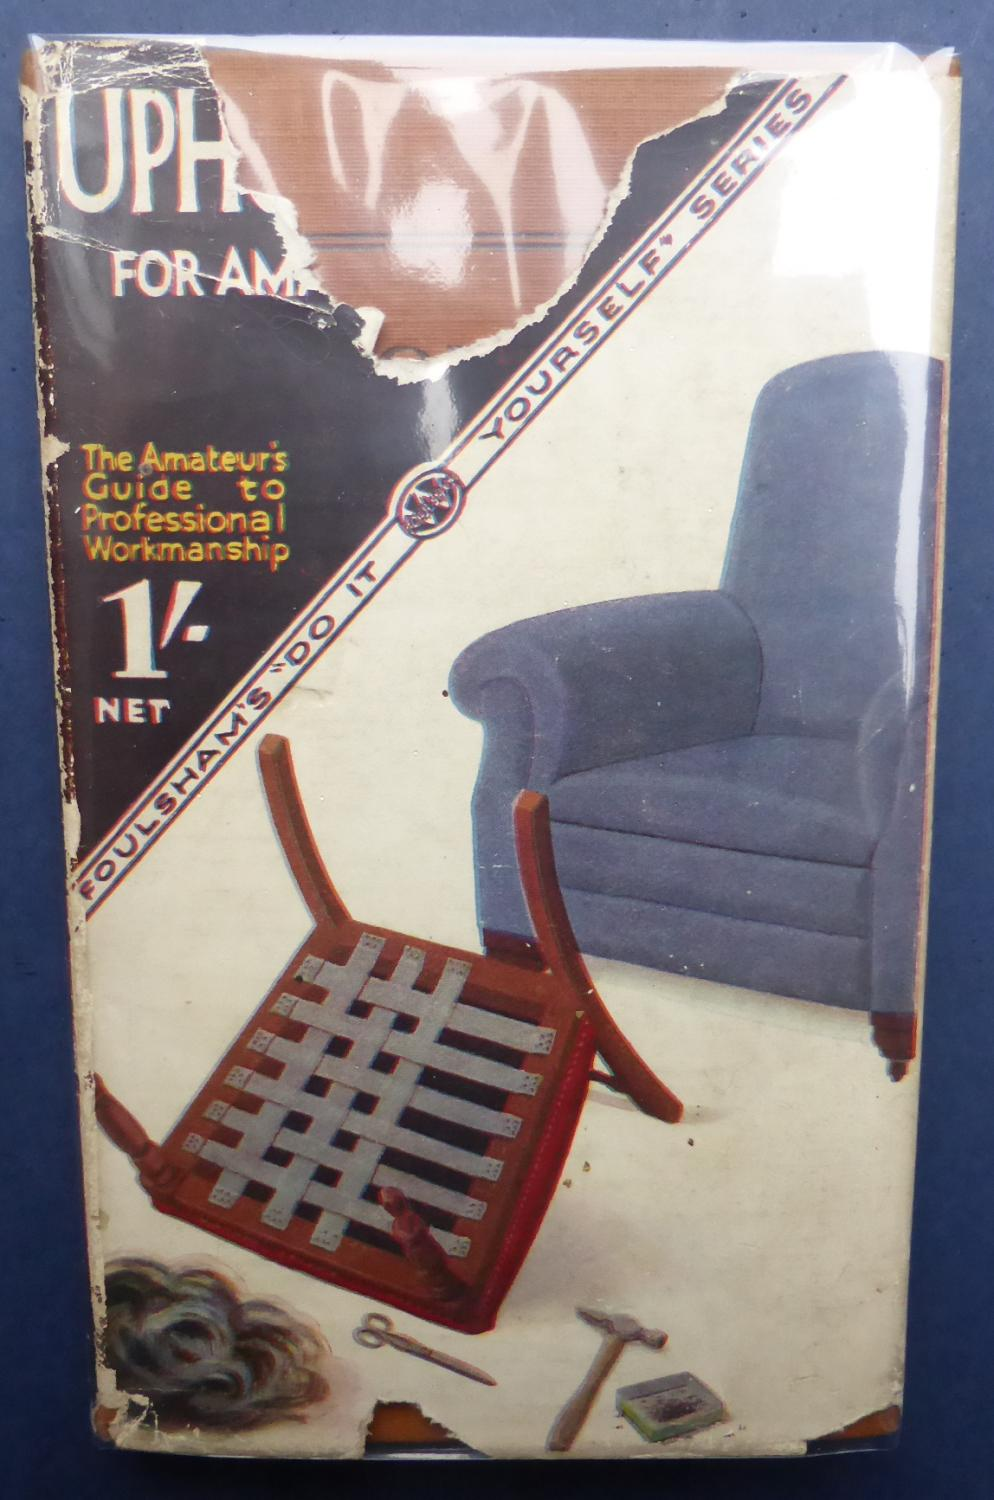 Upholstery for amateurs the do it yourself series de harding c w upholstery for amateurs the do it yourself series harding c solutioingenieria Images